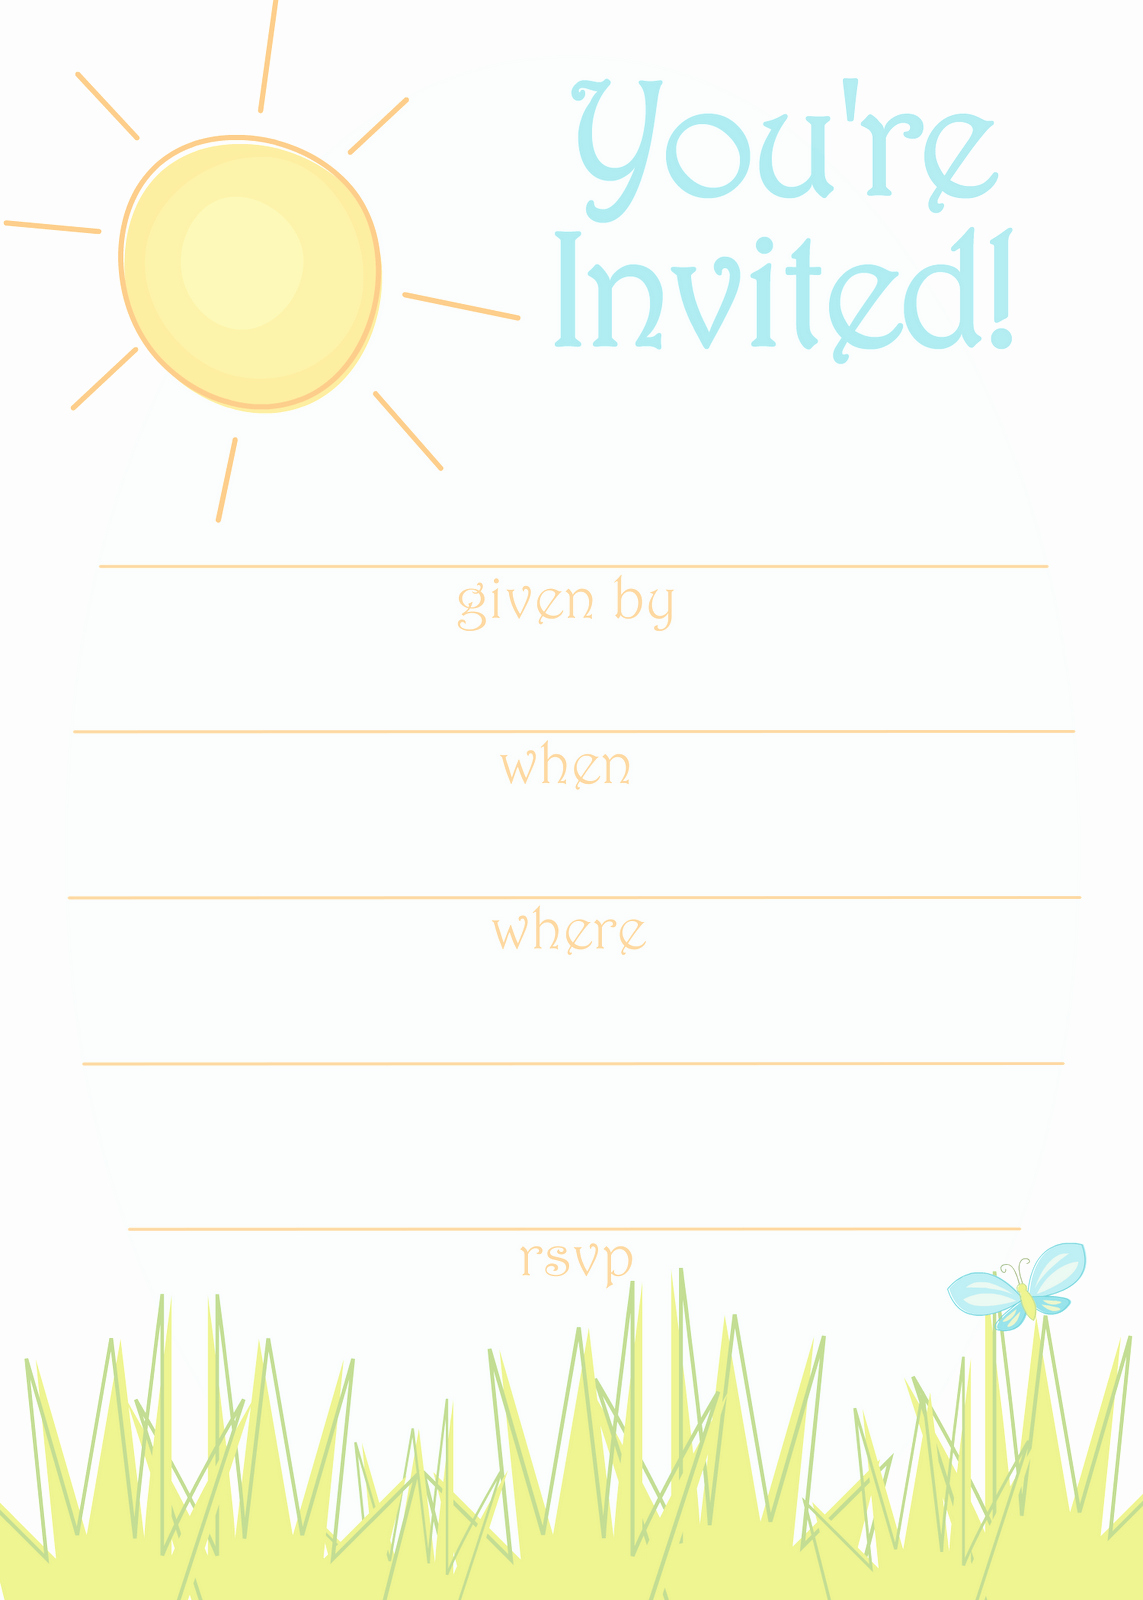 Free Printable Party Invitations Sunny Day Invitation for